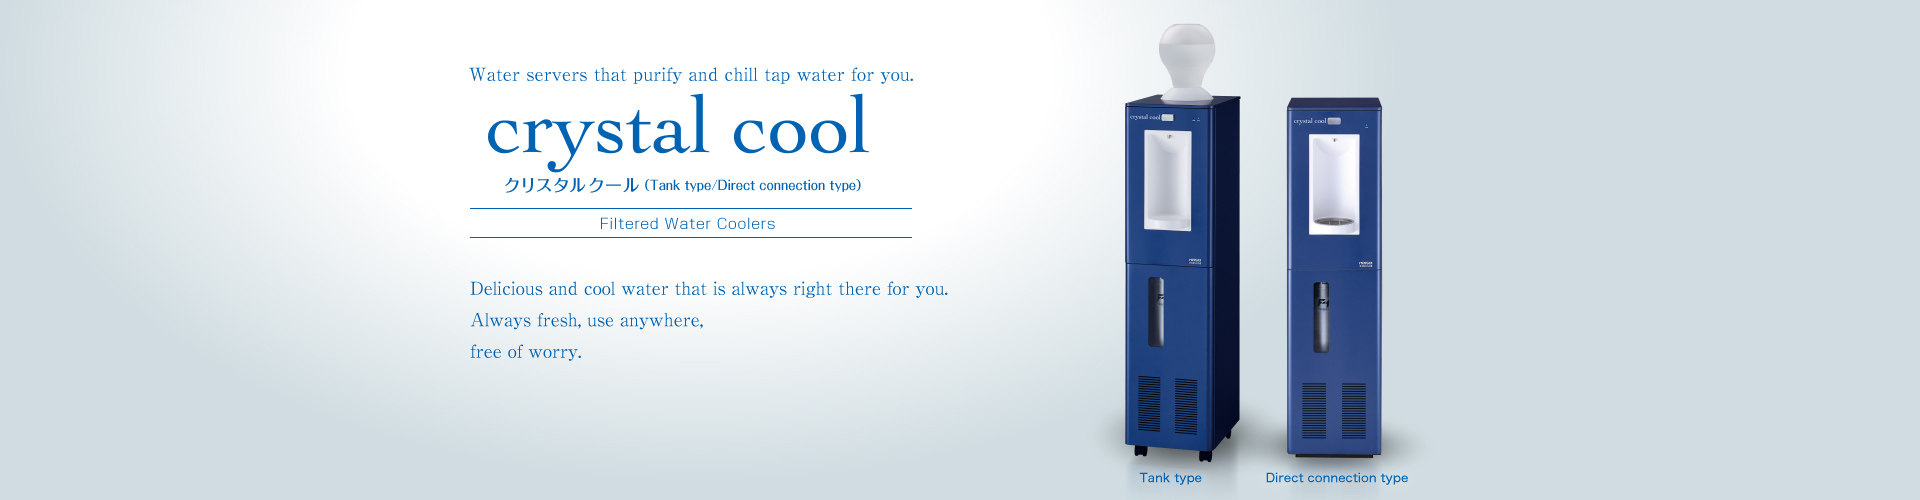 Crystal Cool Filtered Water Coolers